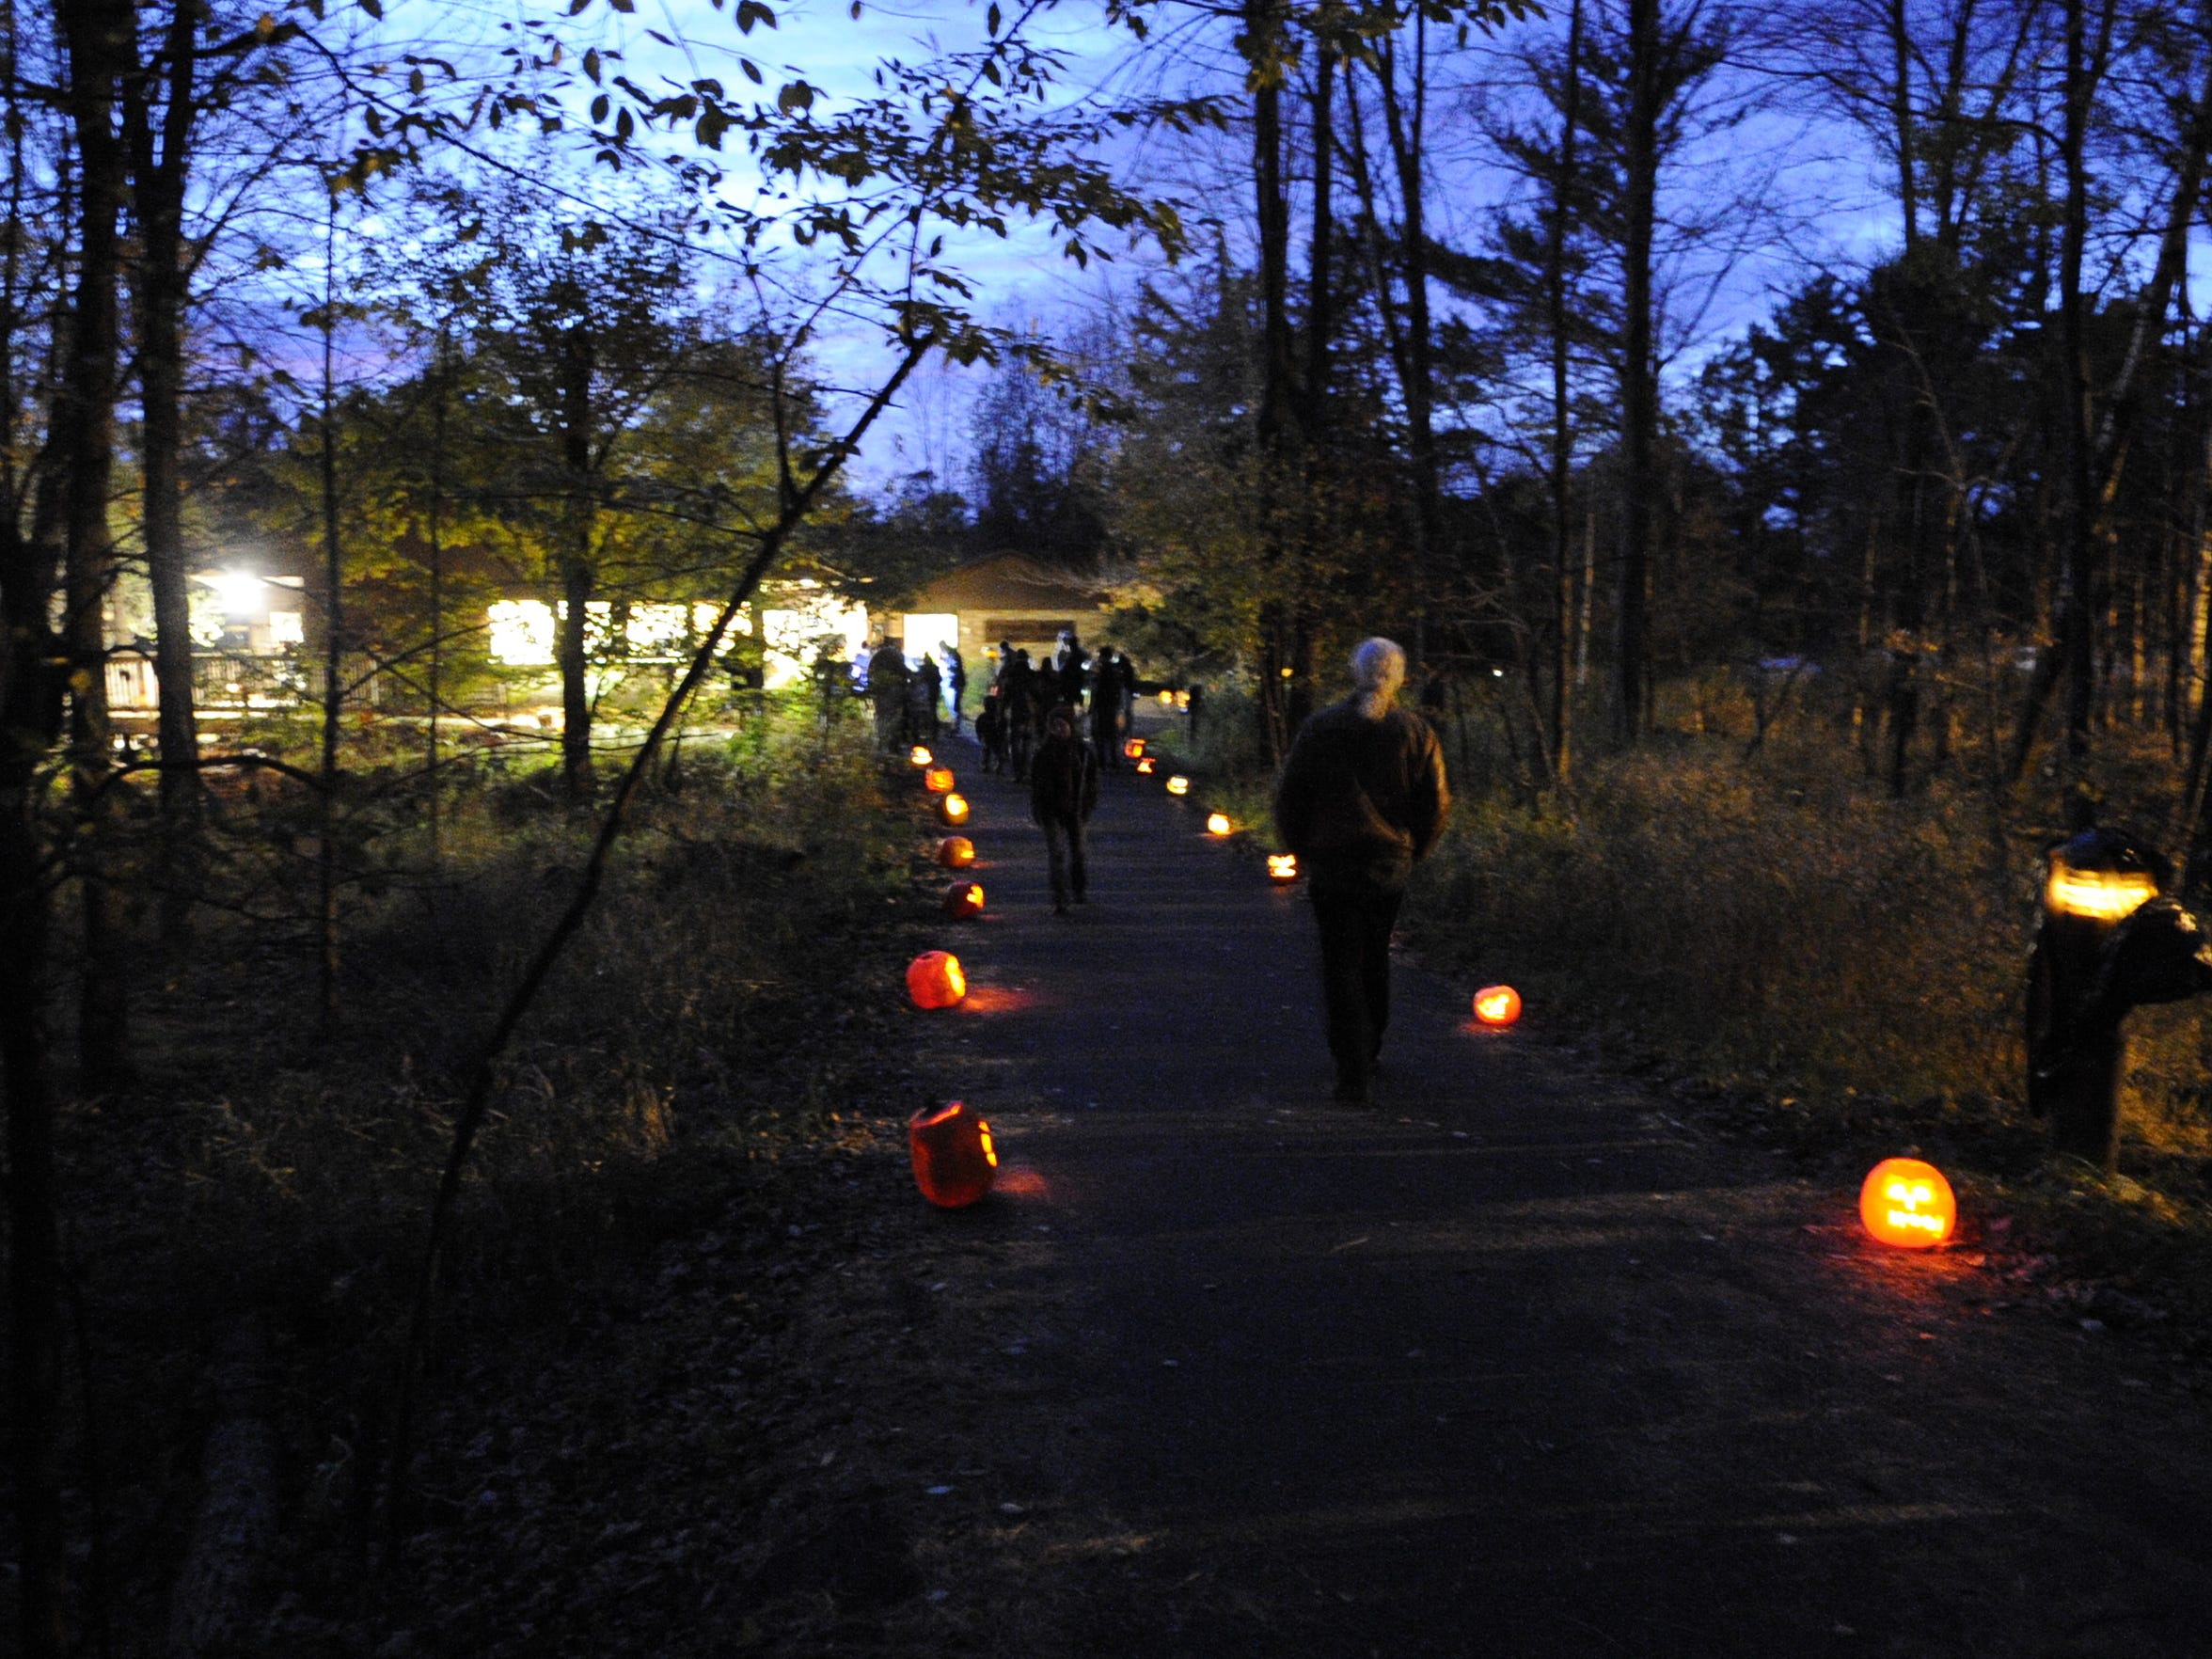 Hundreds of people gather at the University of Wisconsin-Stevens Point Schmeeckle Reserve for a candlelight hike in fall 2013.